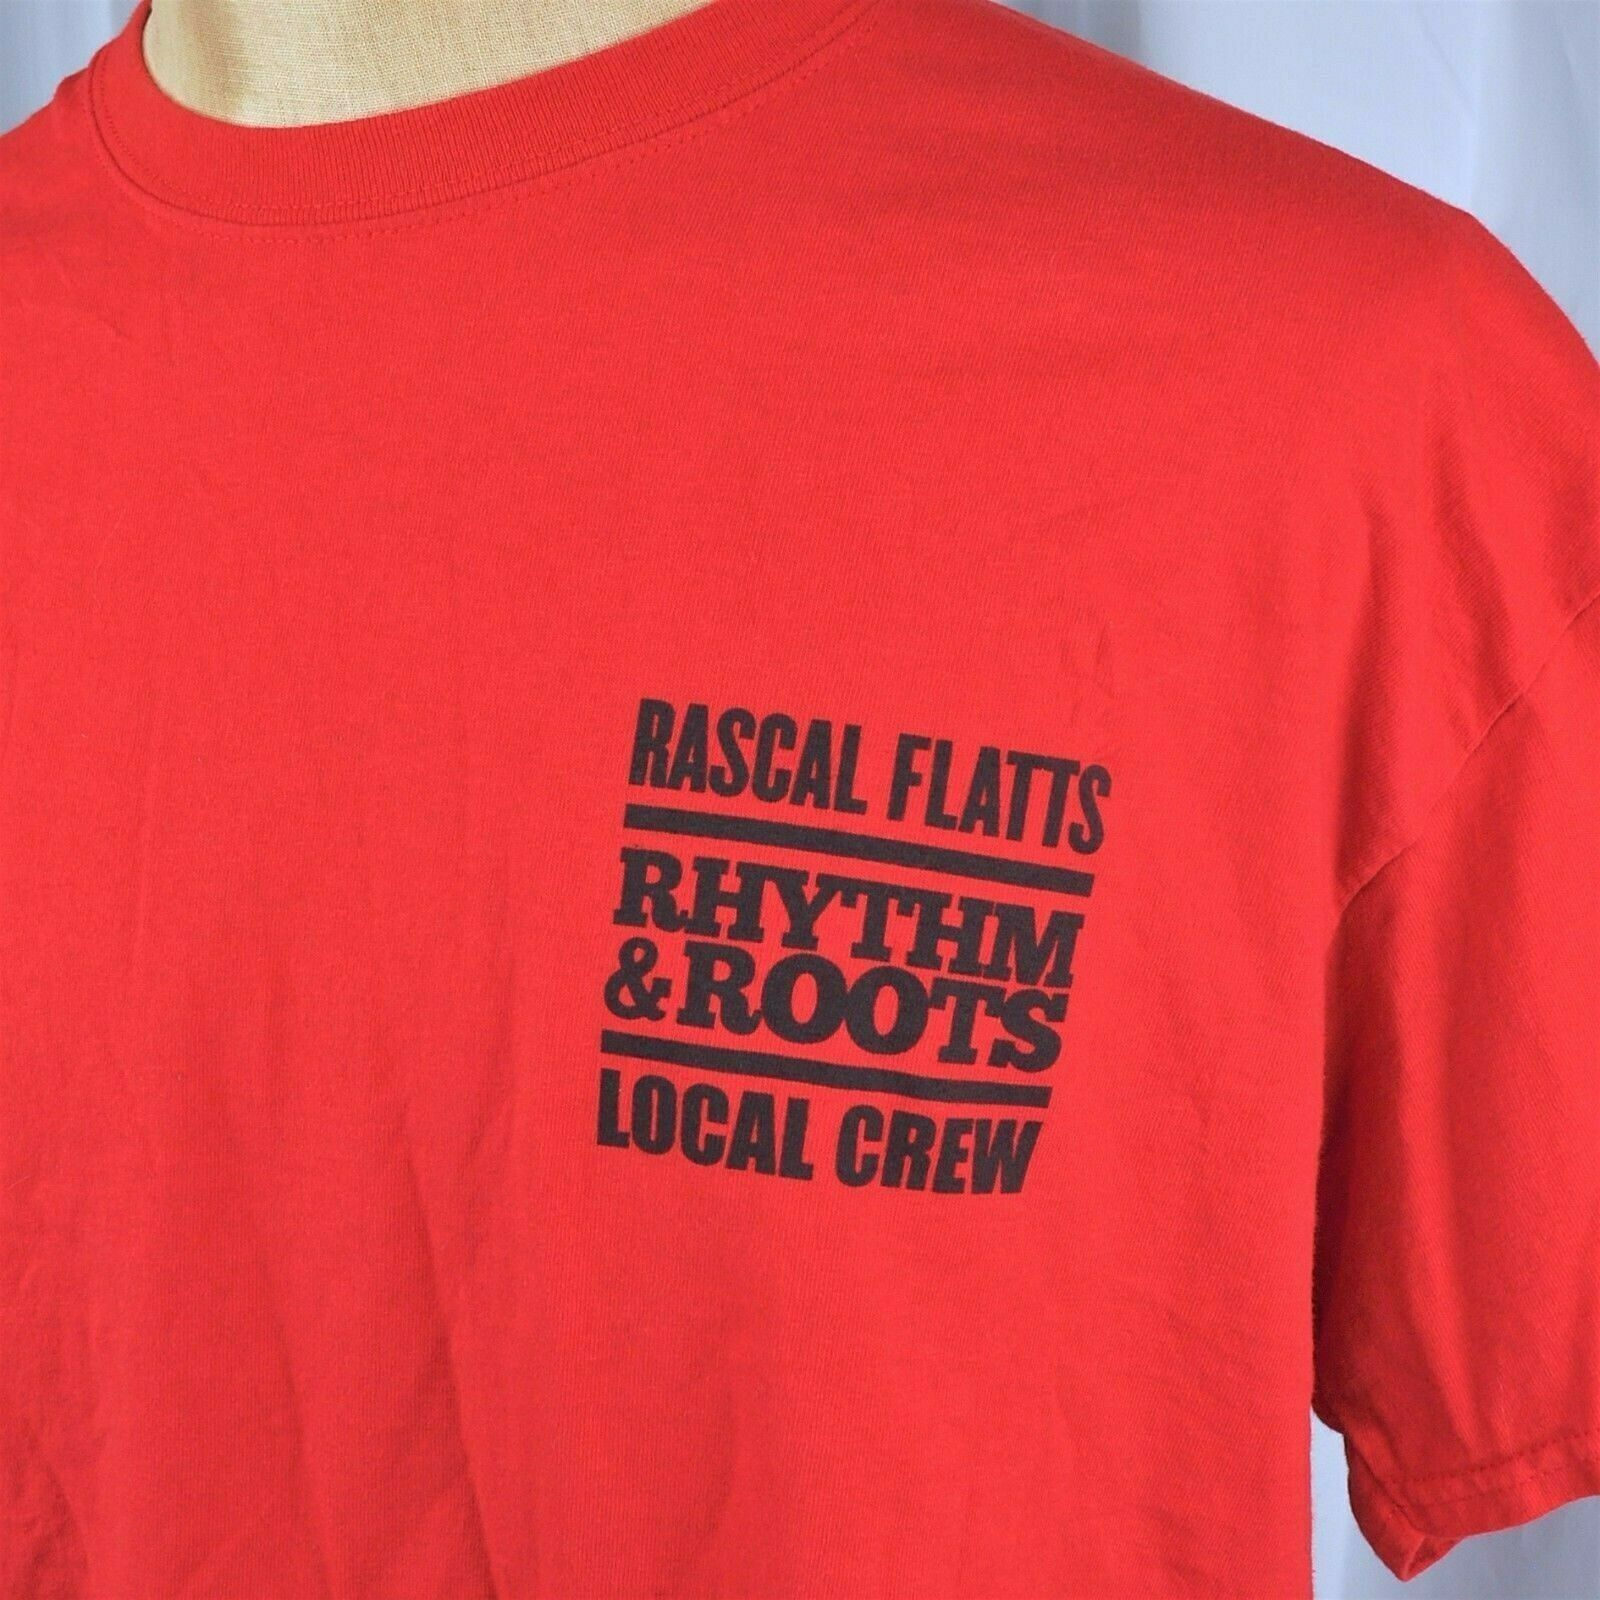 Primary image for Rascal Flatts Local Crew Concert T-Shirt XL Stage Hand Rhythm Roots Definition